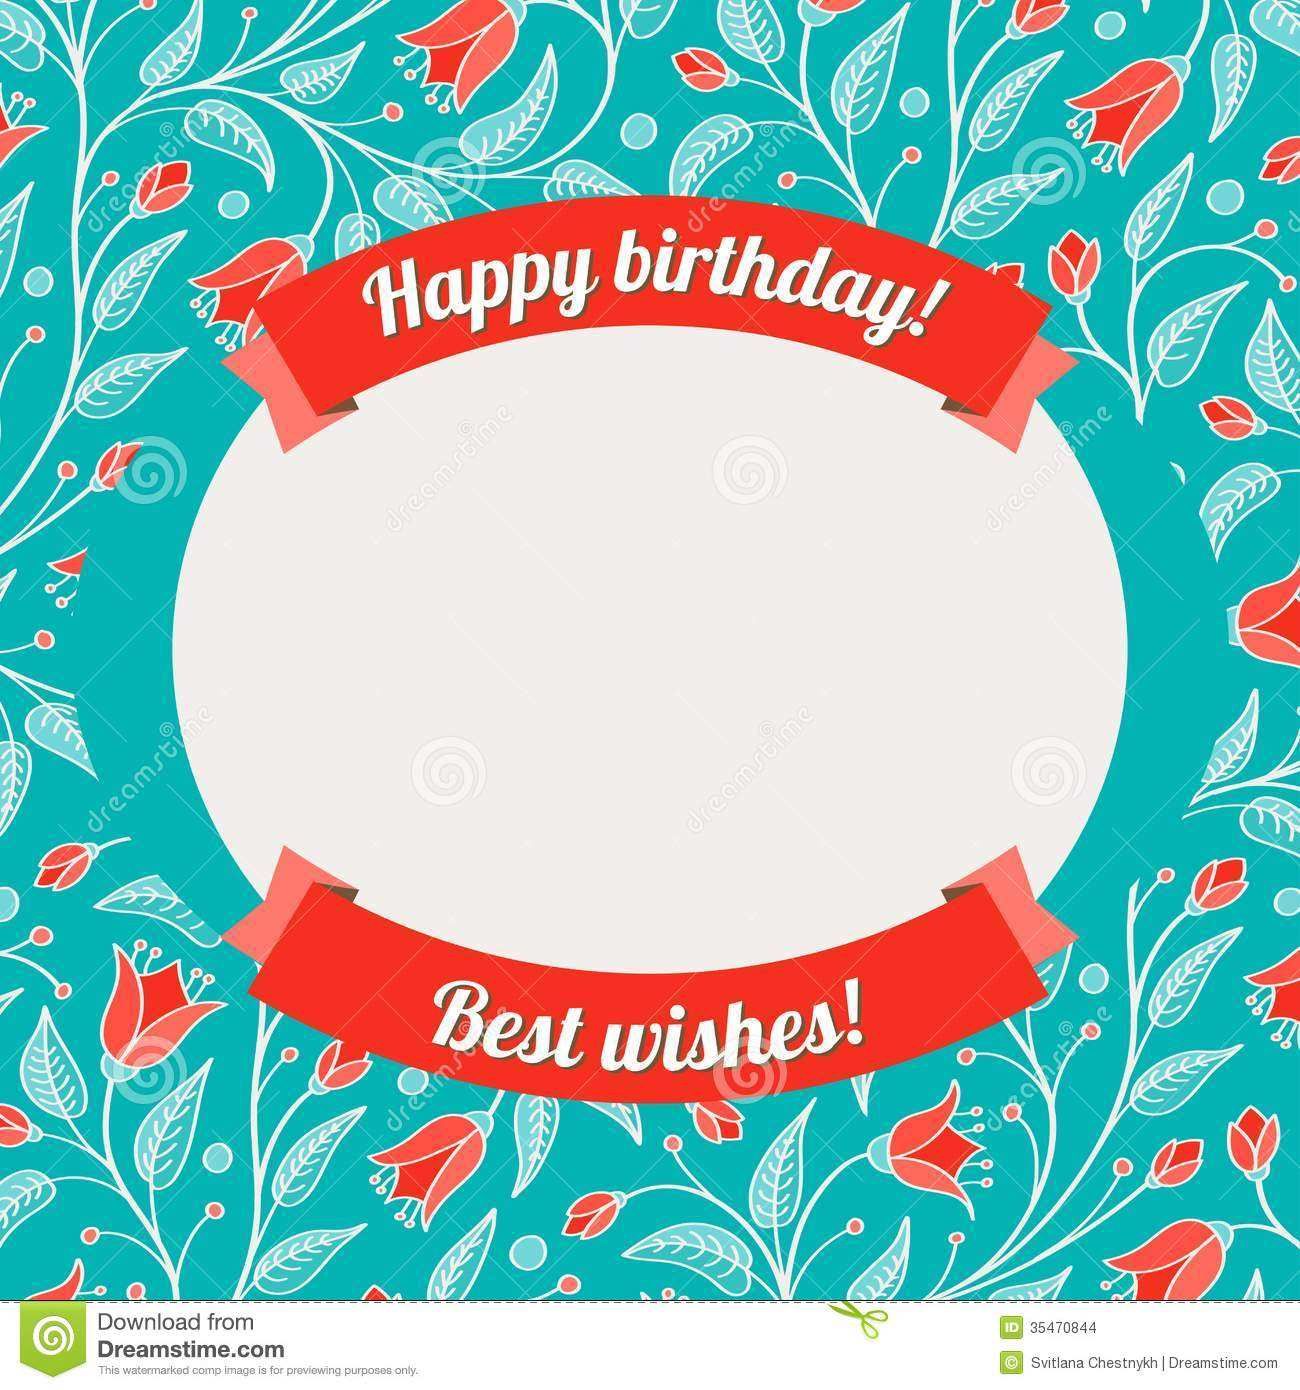 25 The Best Birthday Card Template With Photo Layouts with Birthday Card Template With Photo